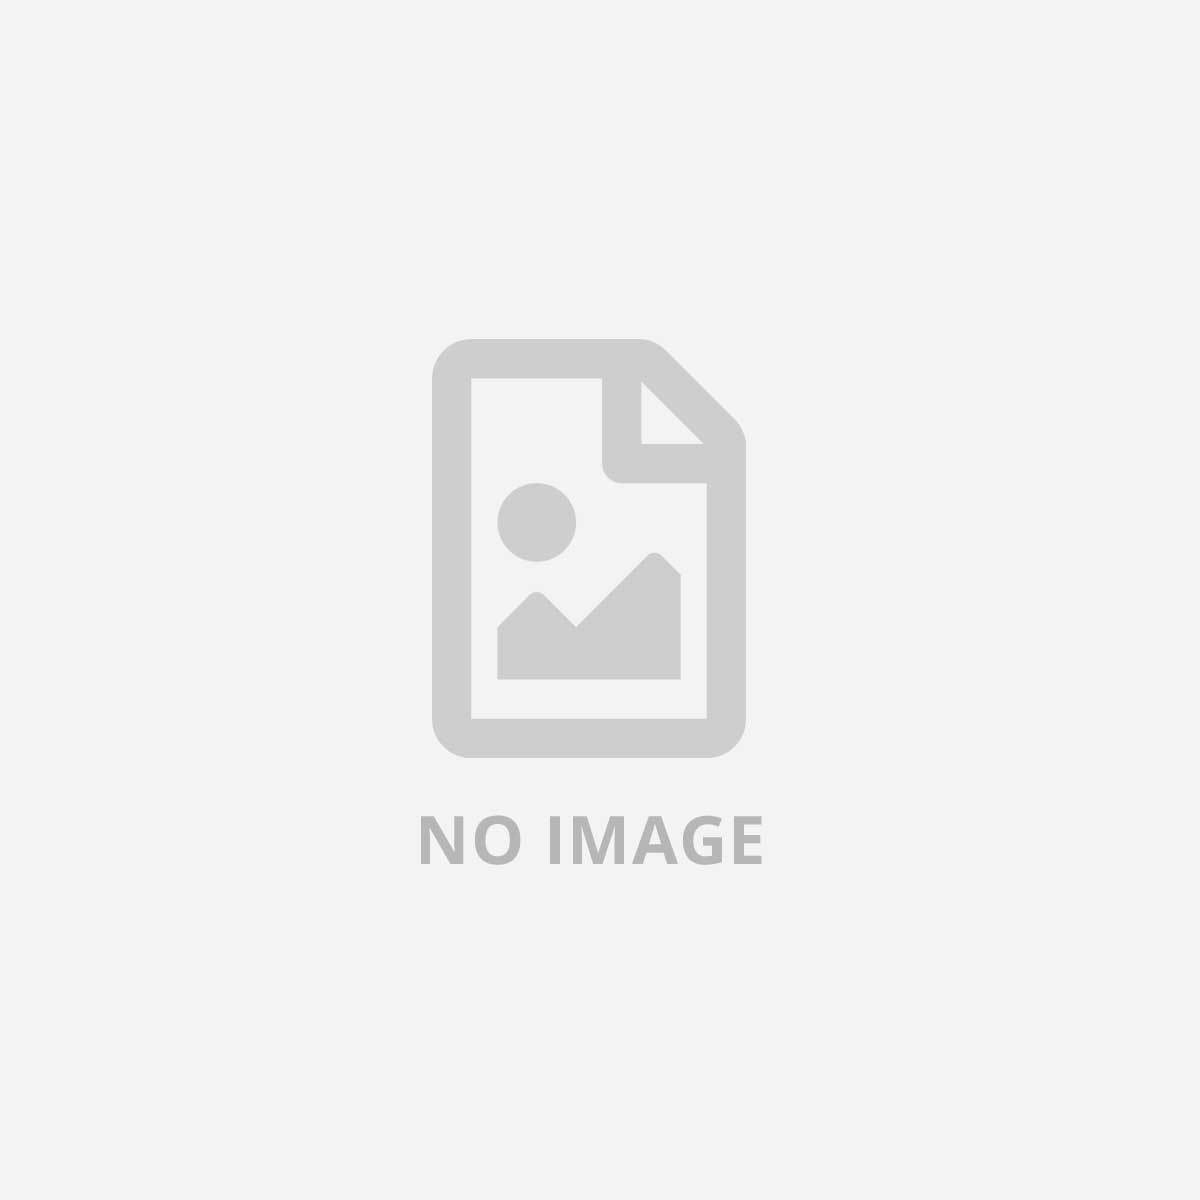 EIZO EUROPE GMBH RADILIGHT